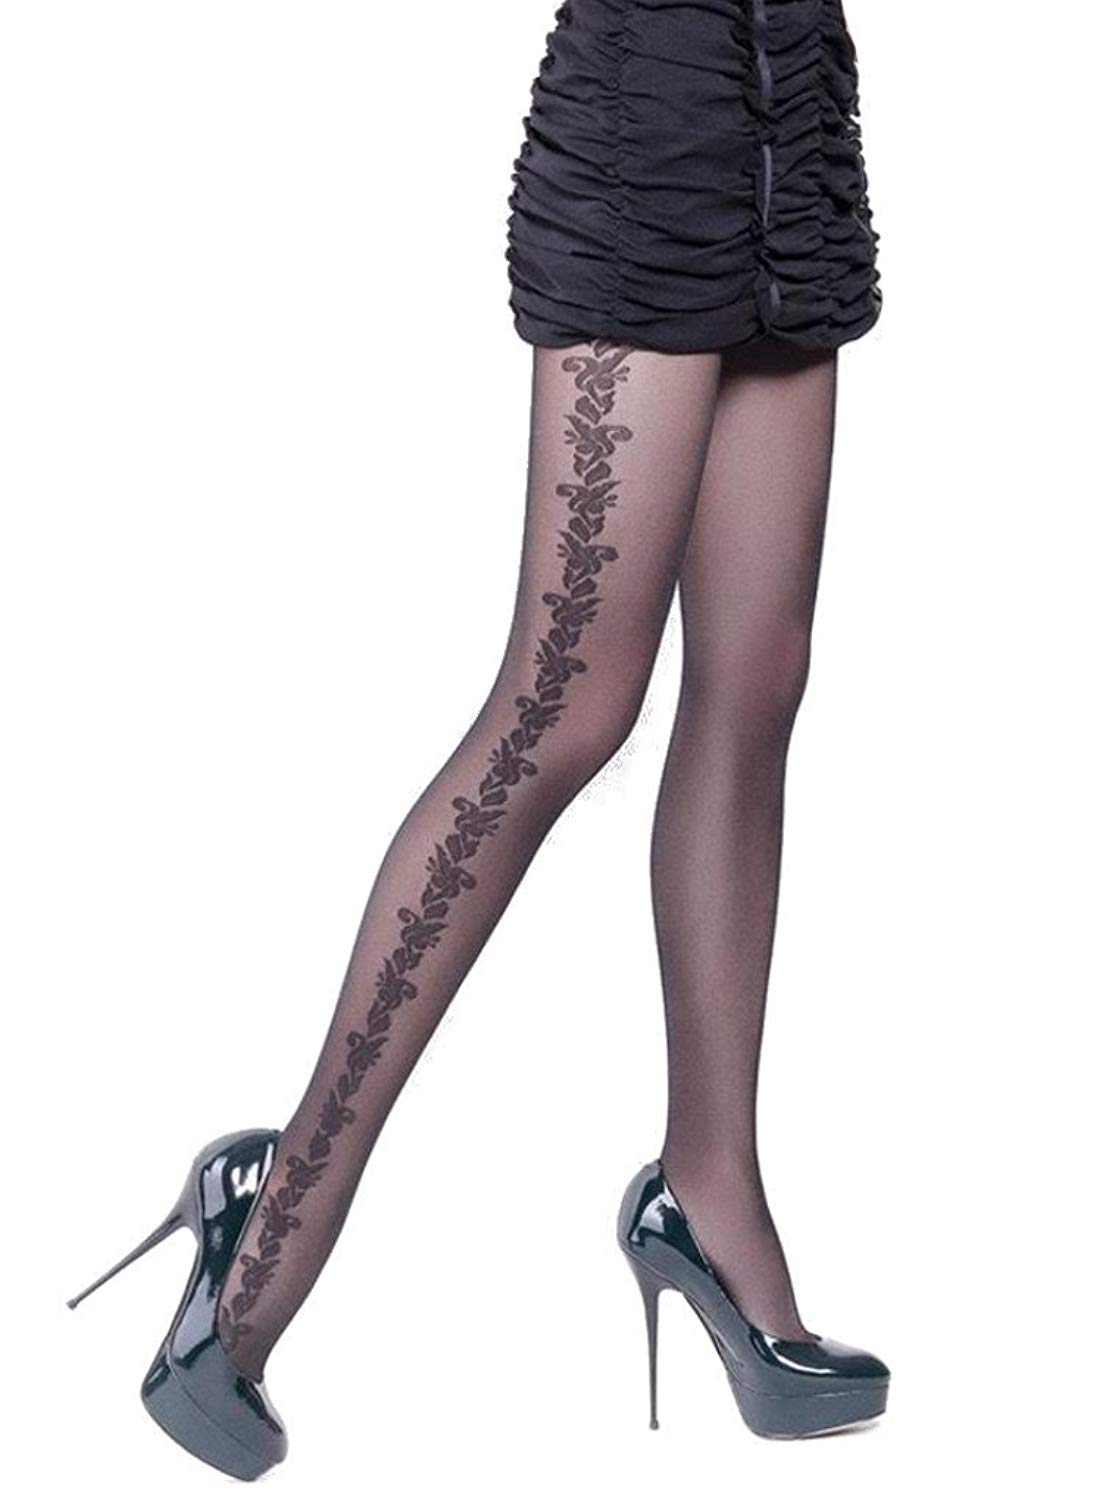 eb9b859b145 Buy Used Patterned Quality Tights Hosiery Good Worn Condition in ...